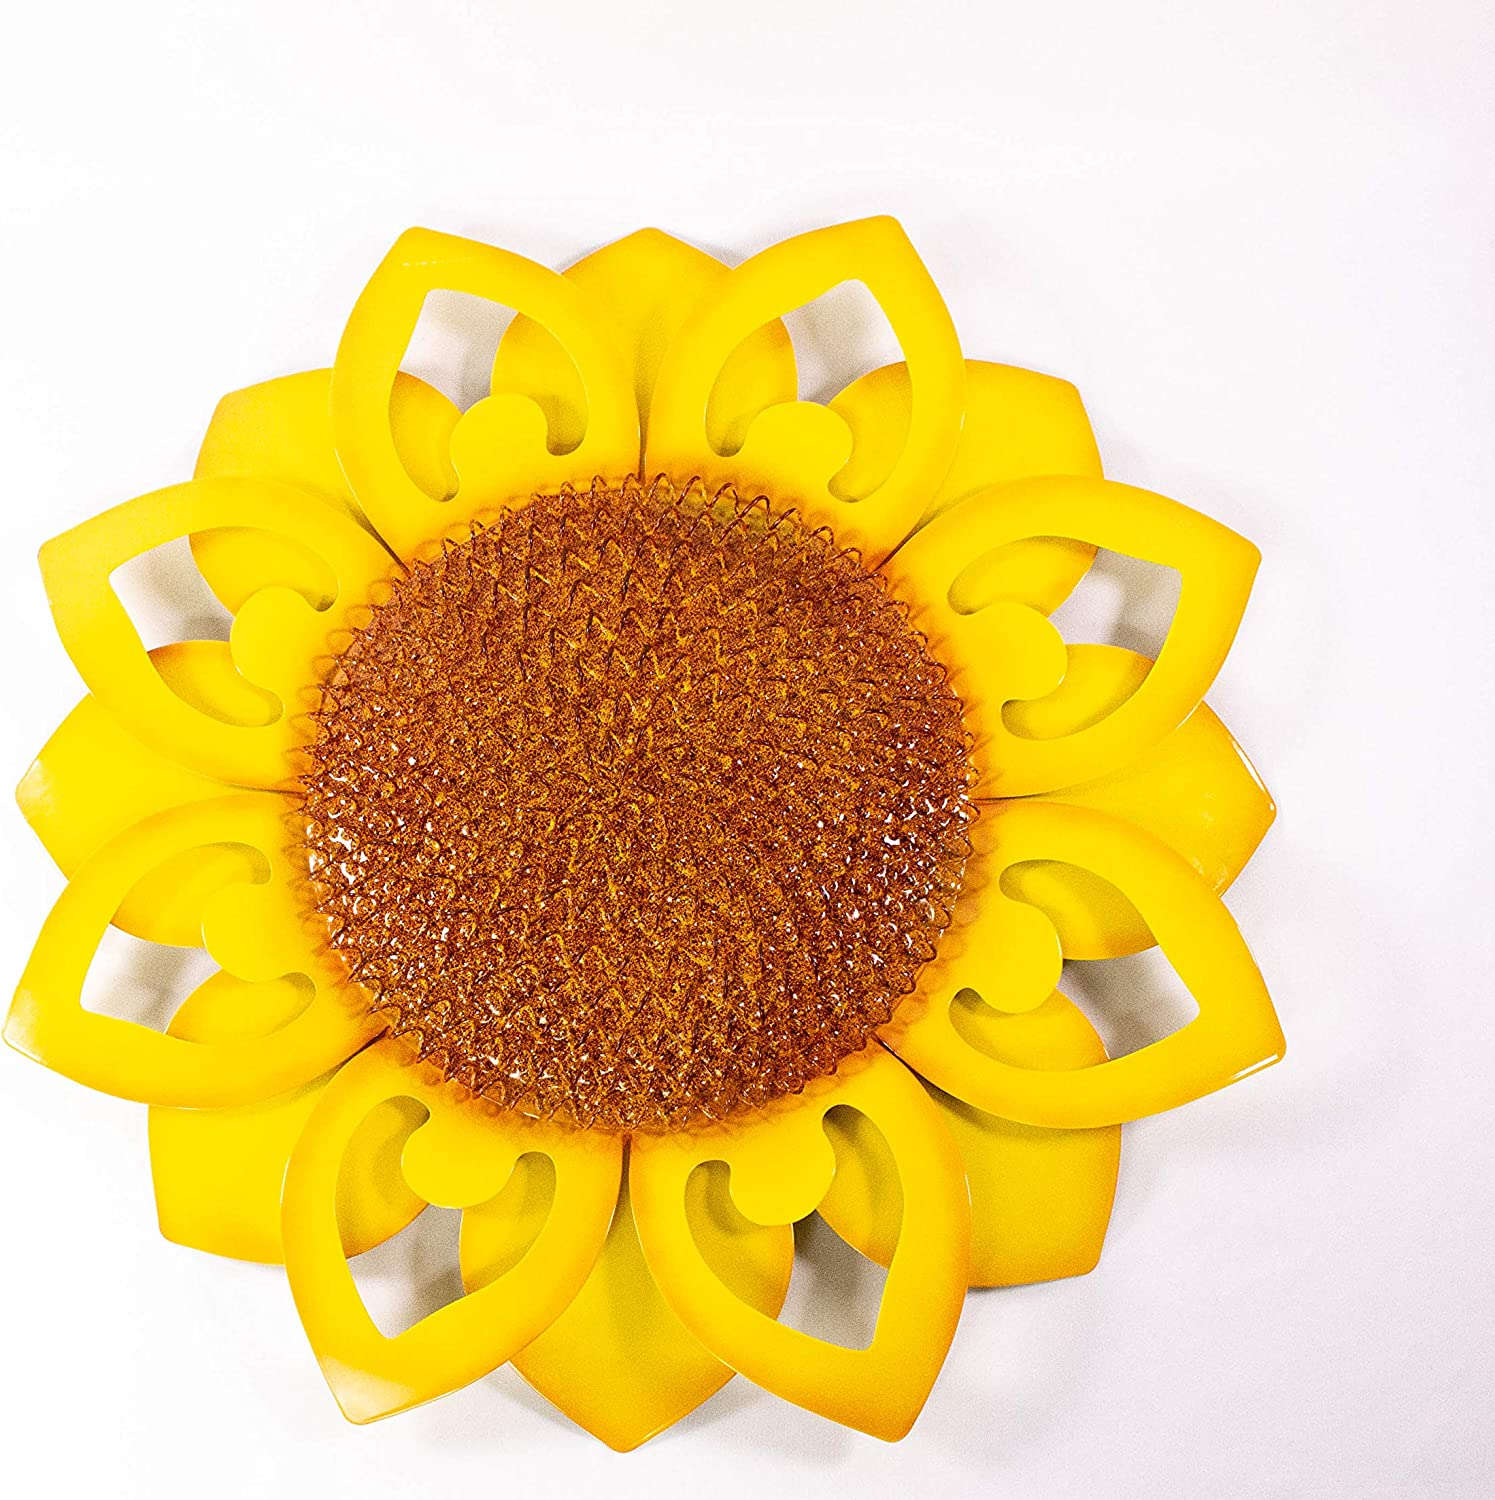 Metal Sunflower Wall Art Decor - 22 Inch Yellow Inspirational Floral Home Decor. Aesthetic Room Decor. Hanging Decoration for Indoor and Outdoor On Fence, Living Room, Porch, Patio, Garden, Hallway.